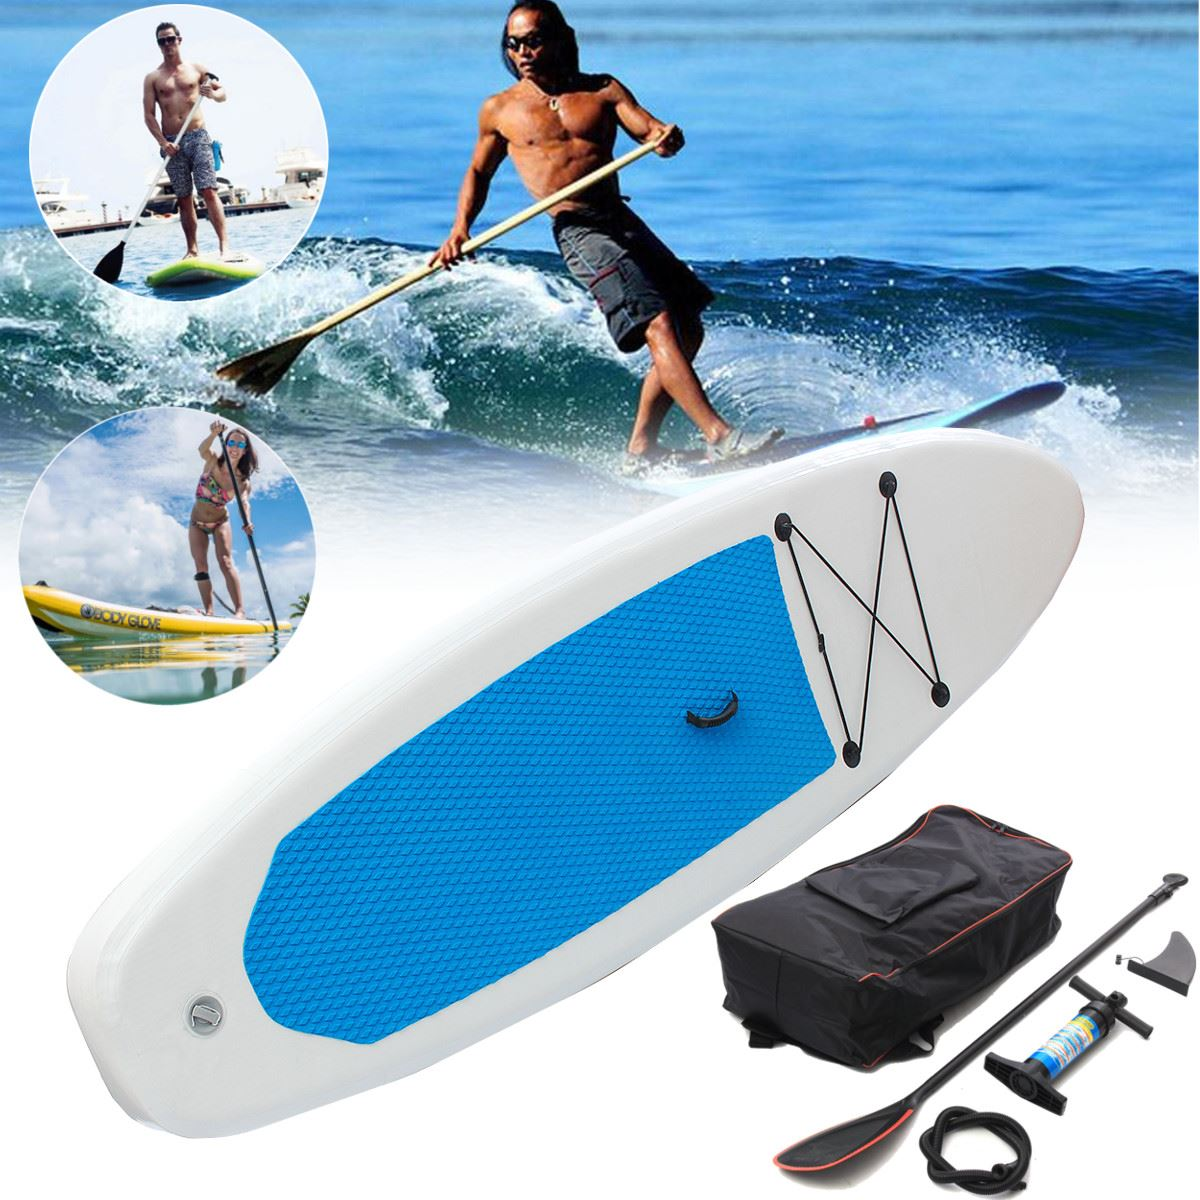 Gofun 122 x 27 x 4 Inch Stand Up Paddle Surfboard Inflatable Board SUP Set Wave Rider + Pump inflatable surf board paddle boat shoulder bag carry bag for inflatable boat kayak sup board stand up paddle surfing board pump oar dinghy raft surf board a05011